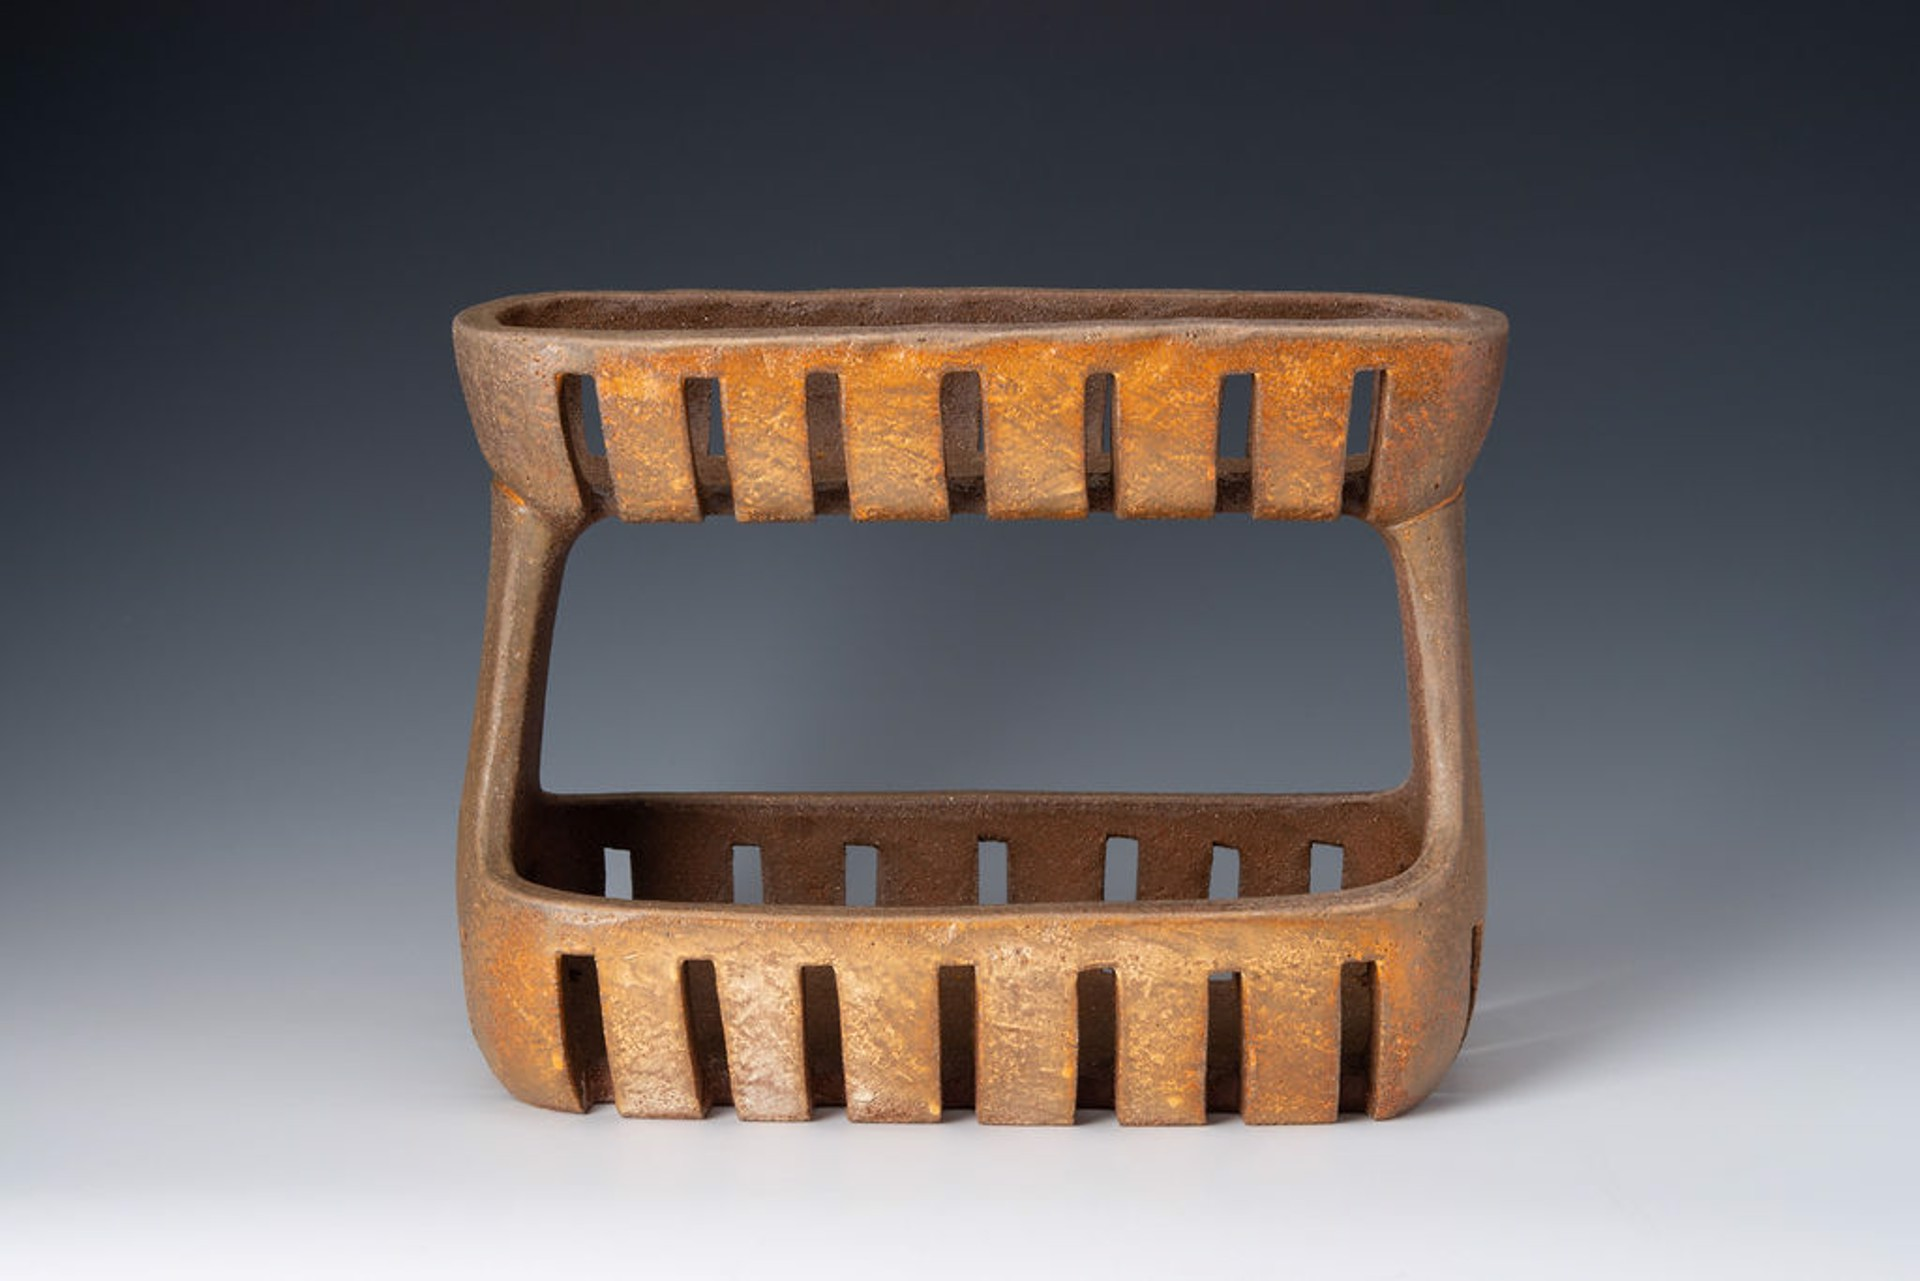 Double Tiered Basket by Julie Crosby